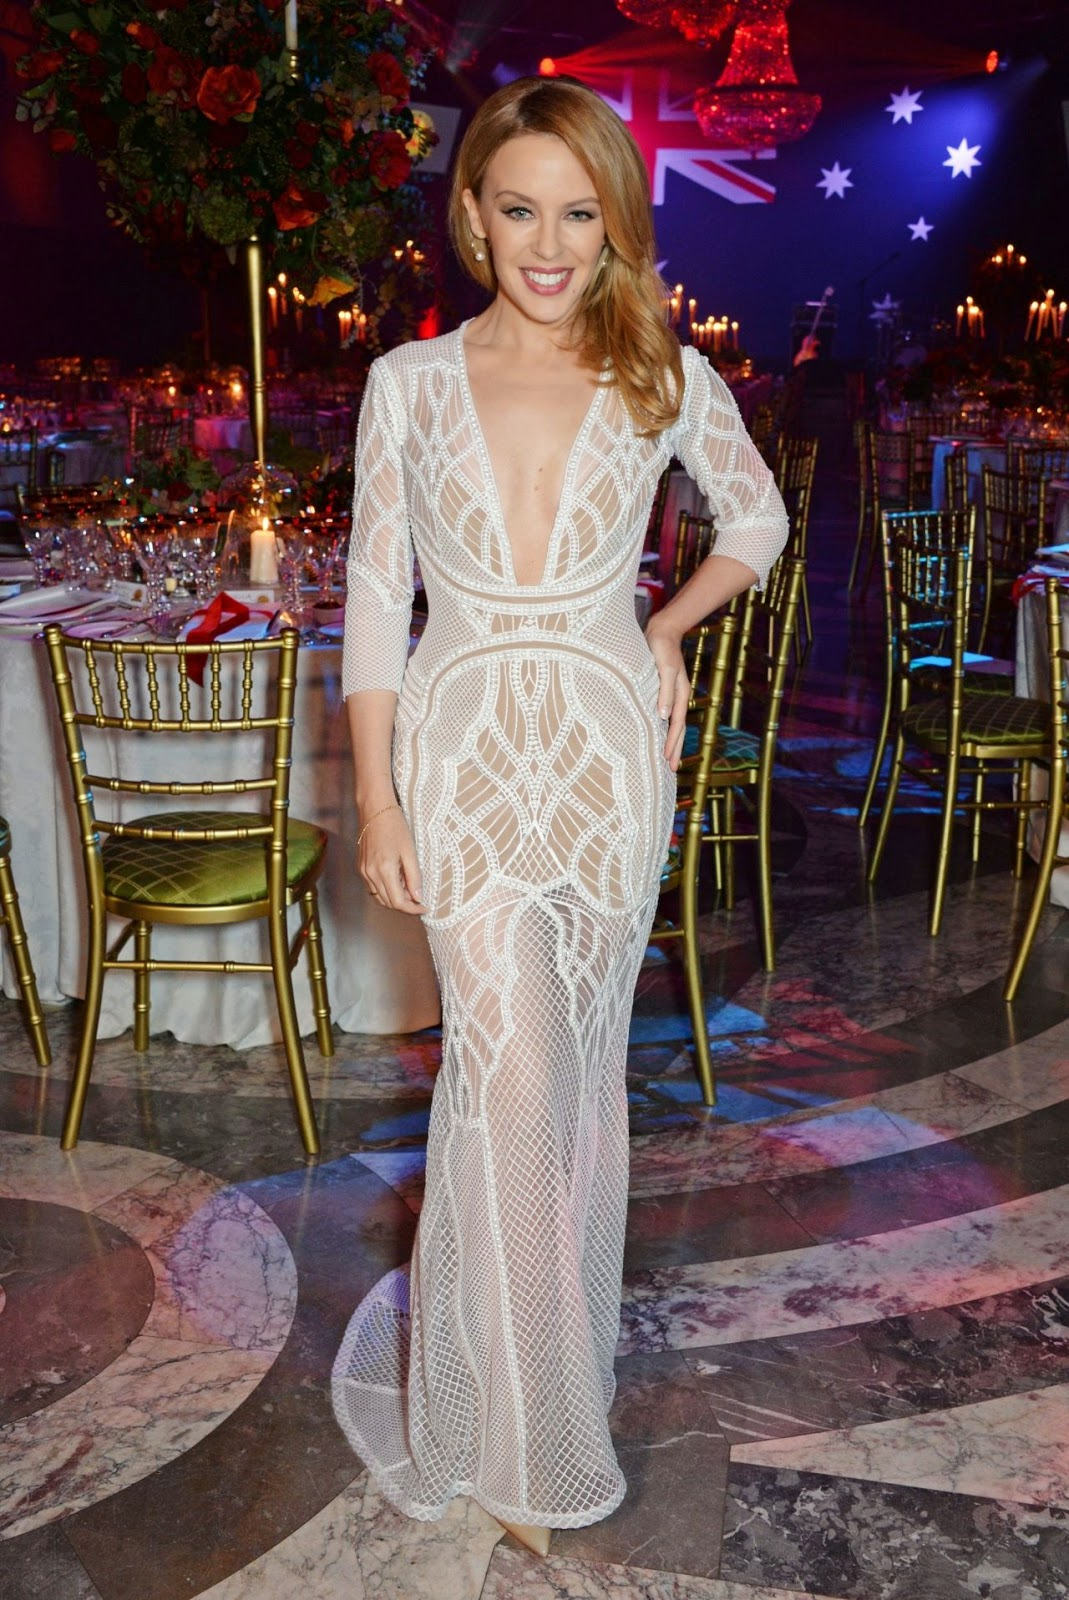 Singer Songwriter, Actress: Kylie Minogue at Australian of the Year UK Quantas Australia Day Gala in London